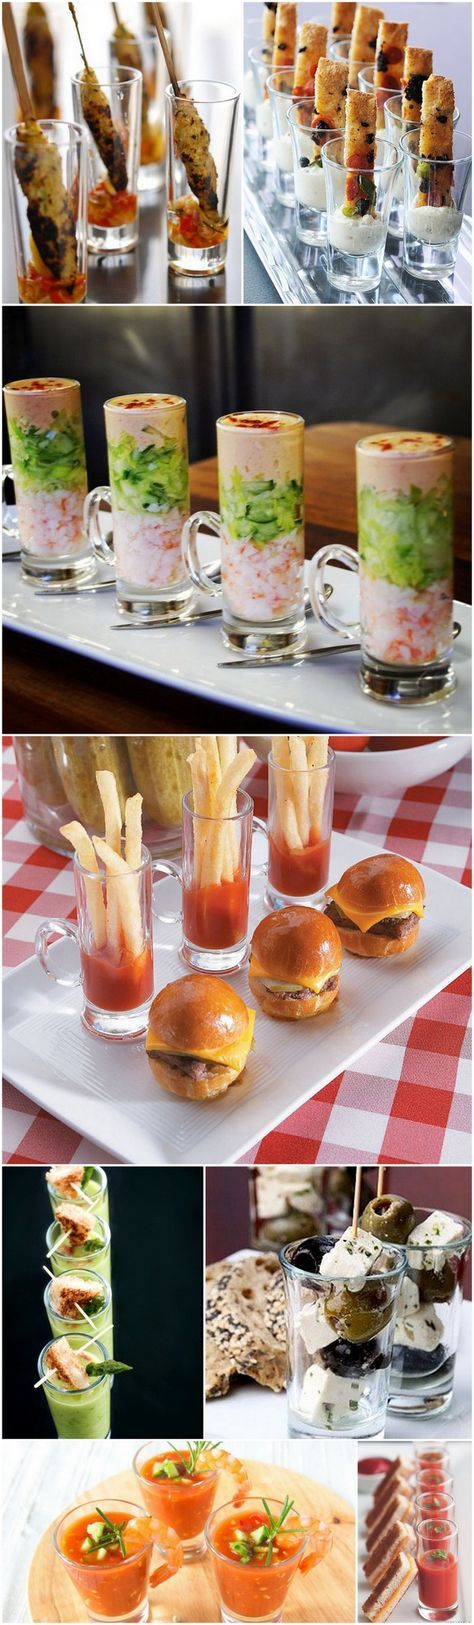 17 best ideas about wedding canapes on pinterest canapes for Canape party ideas